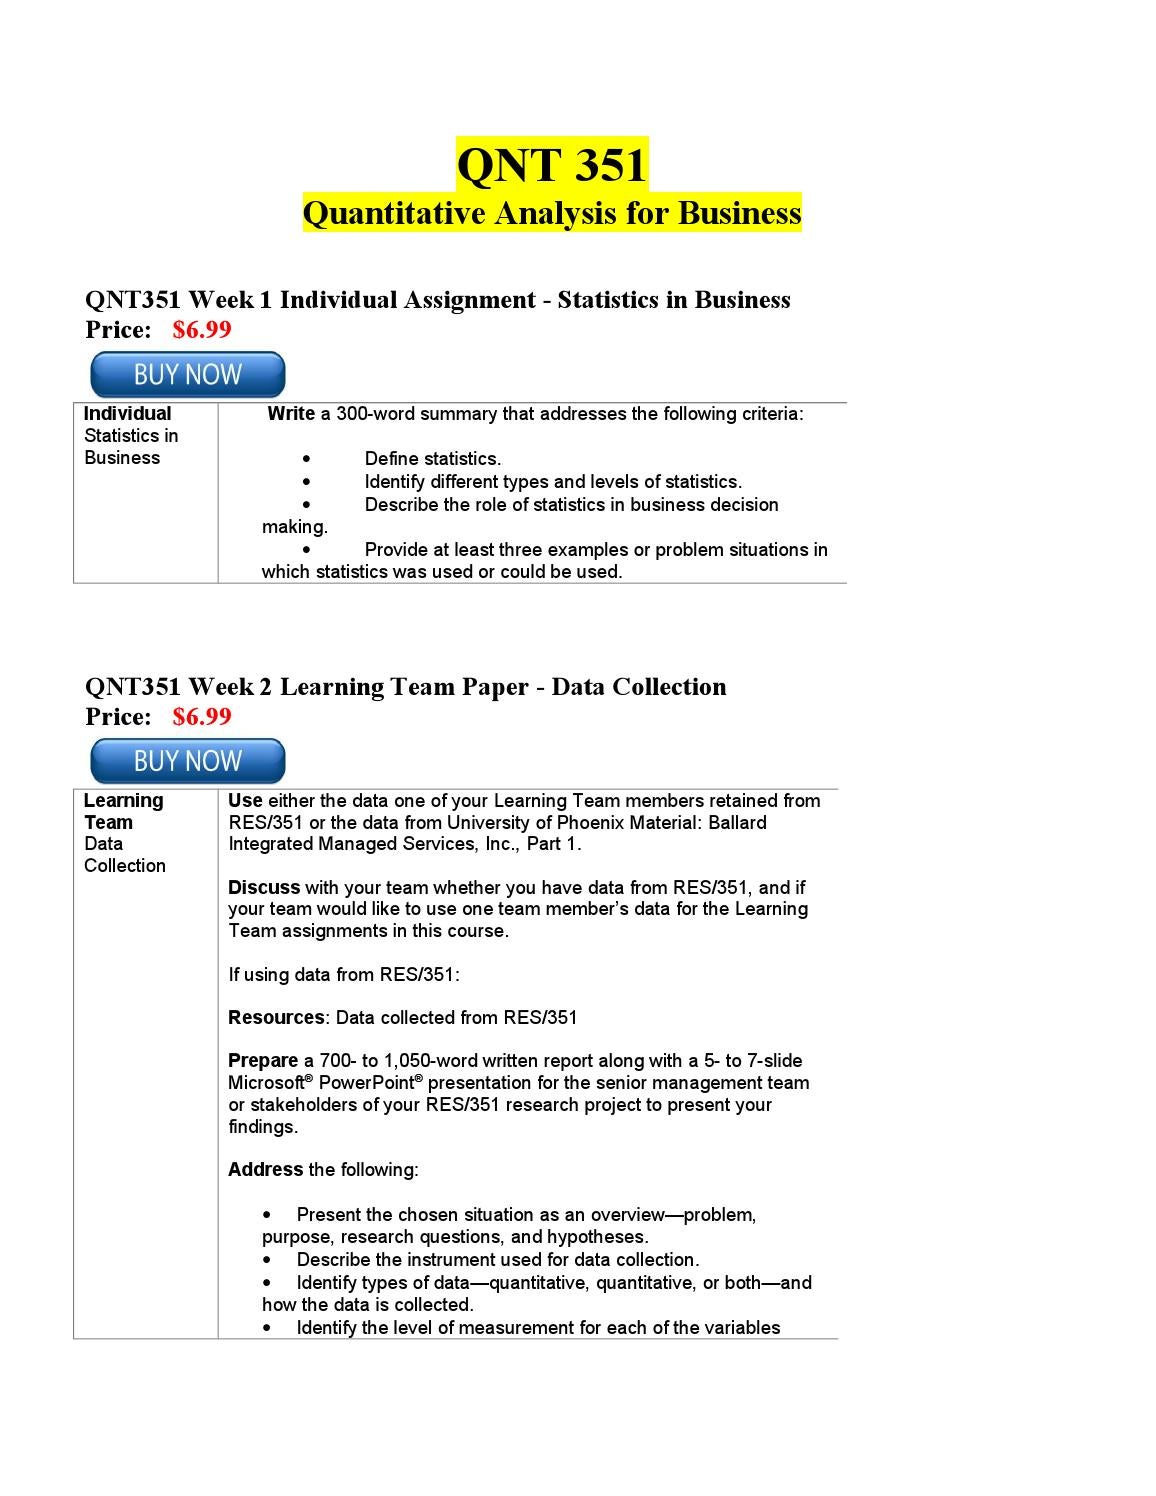 Ballard Integrated Managed Services, Inc. Essay Sample